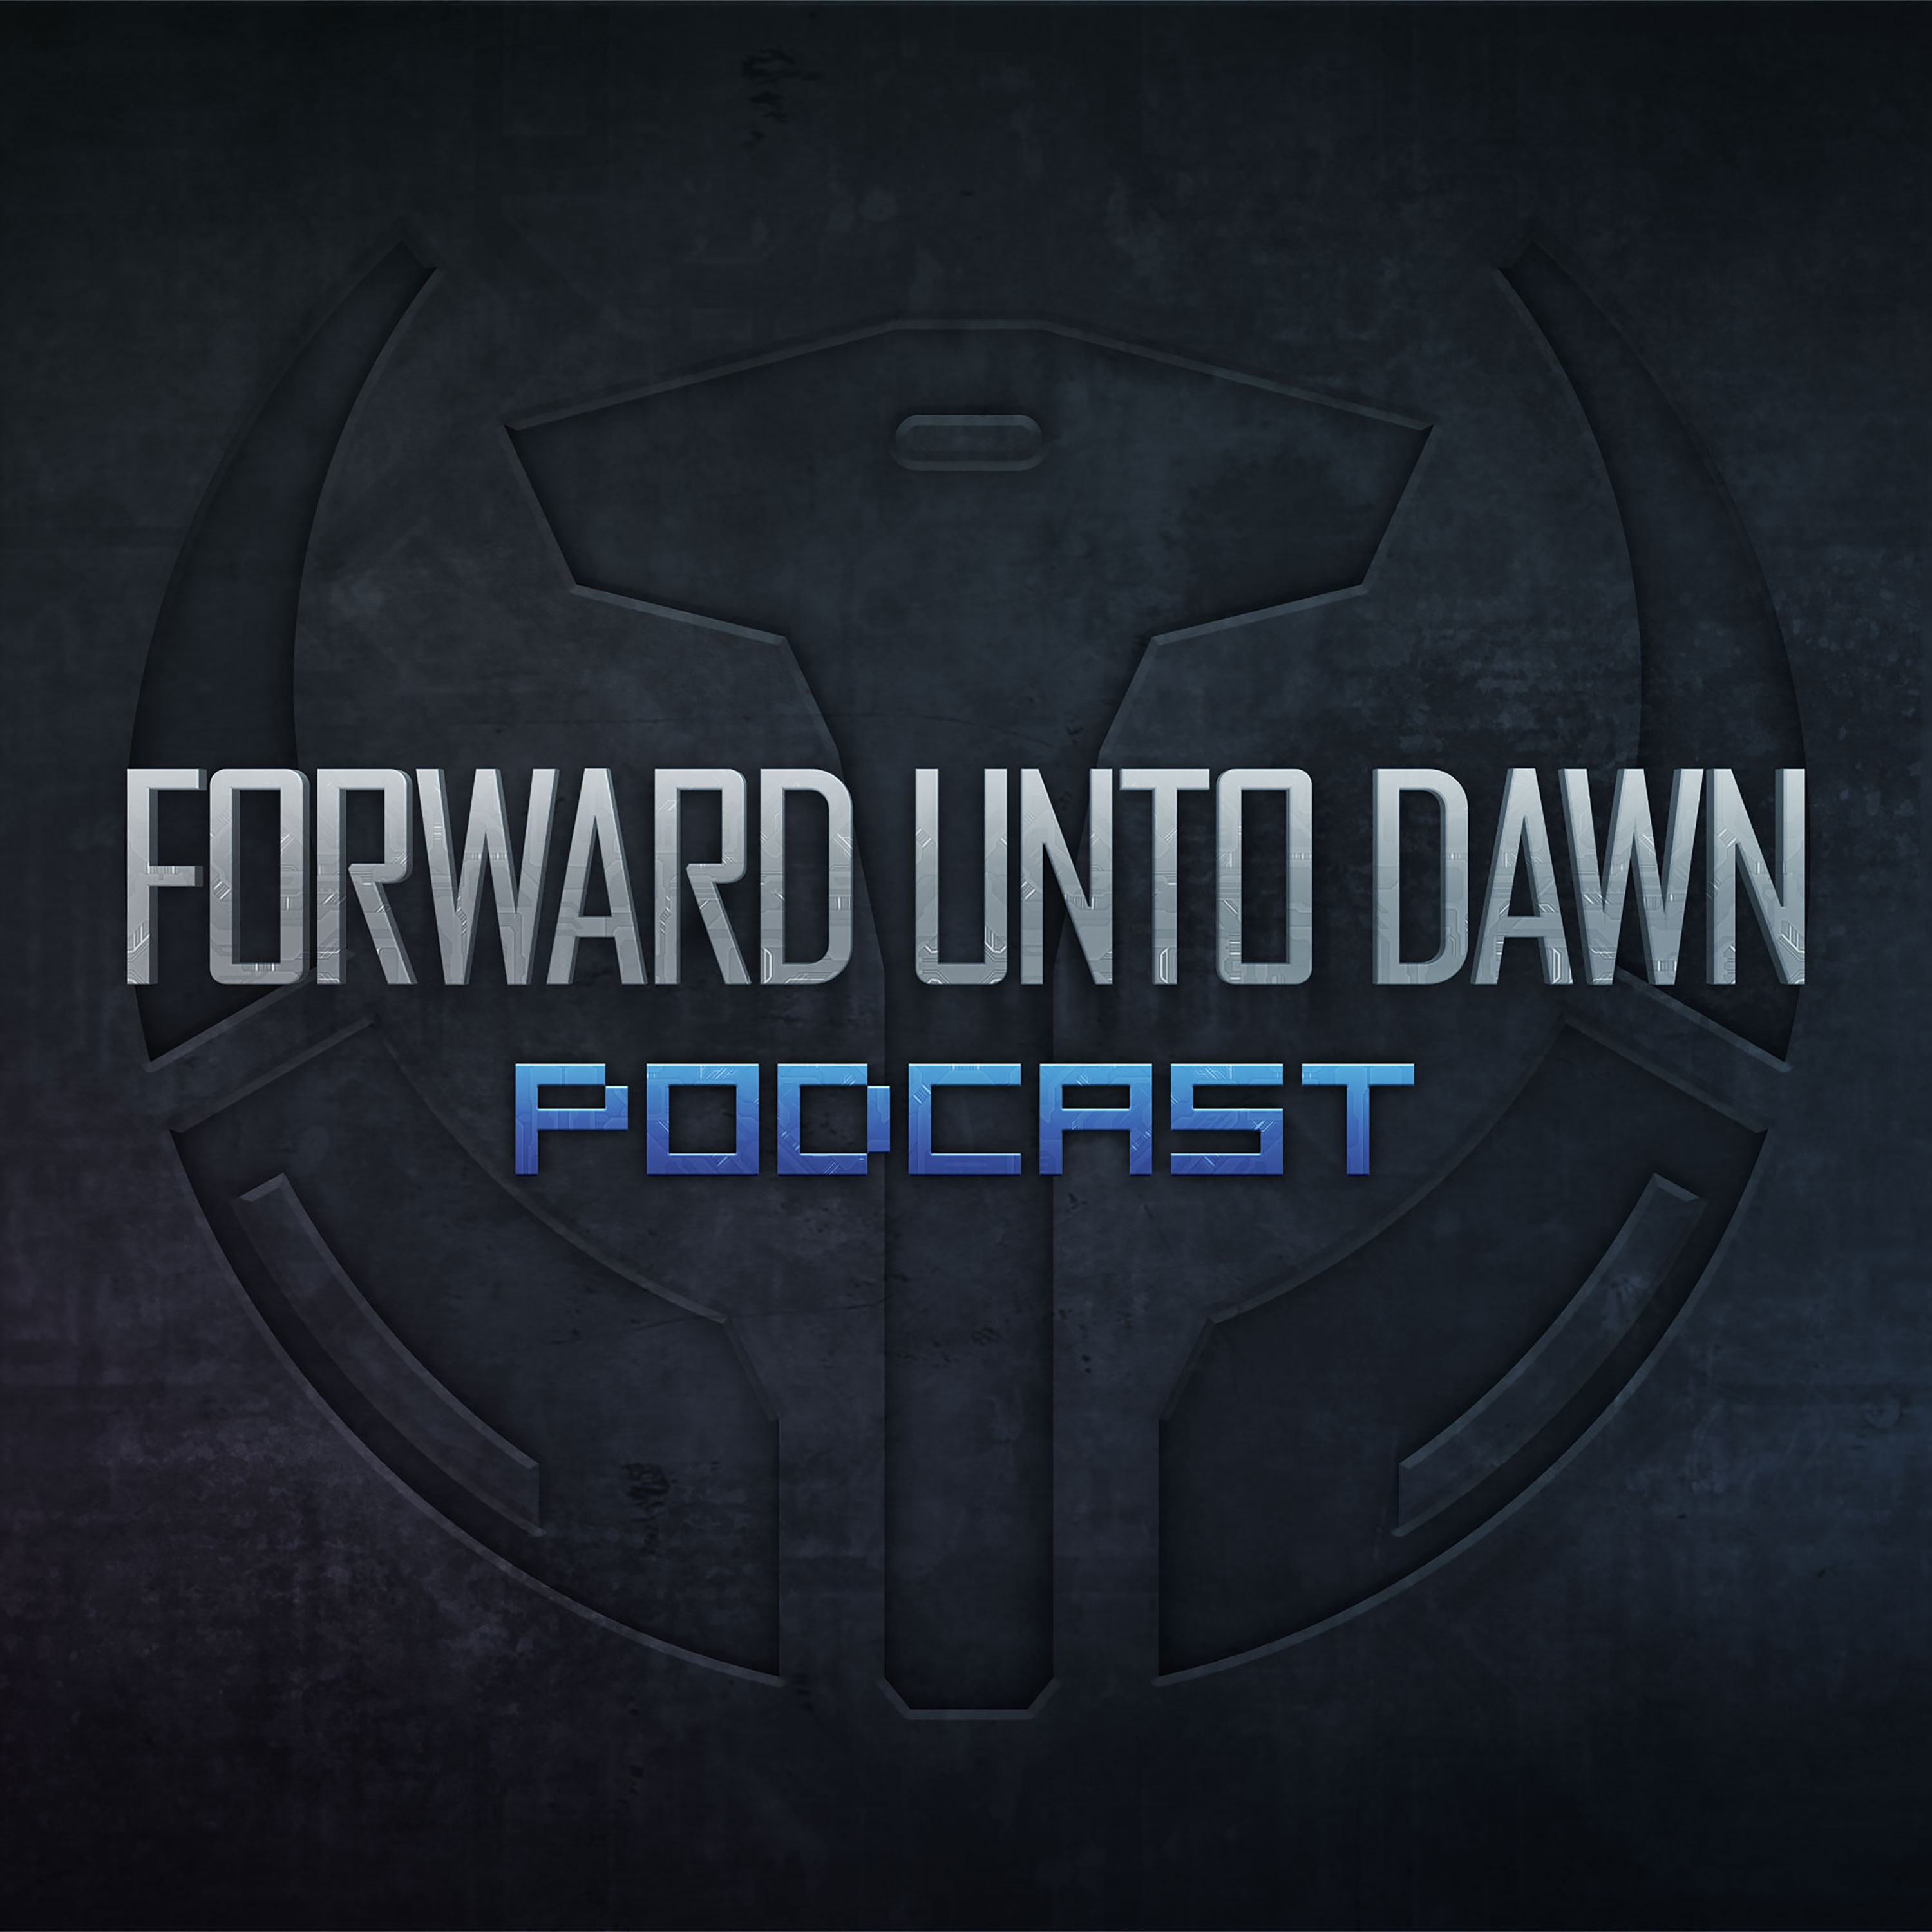 Forward Unto Dawn